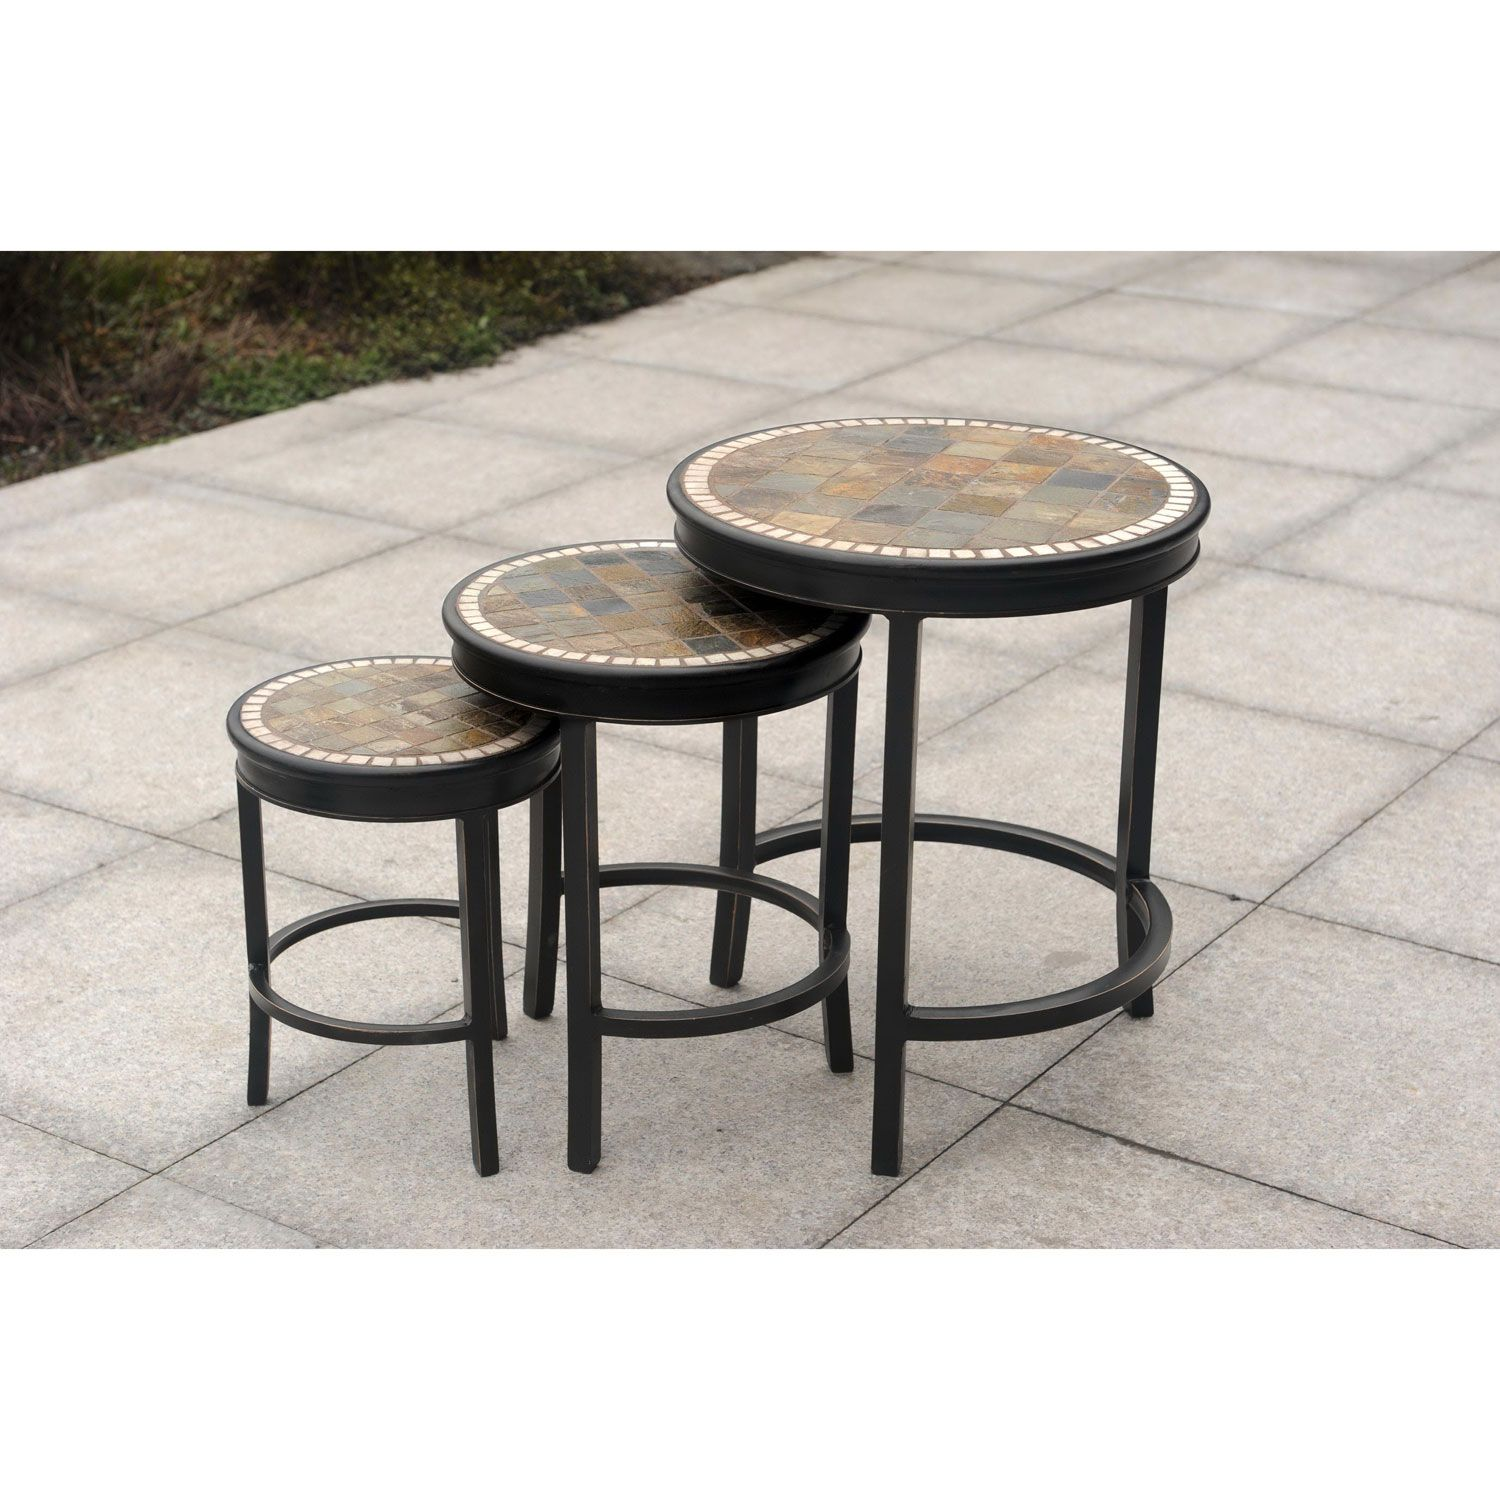 lovely patio accent table design uttermost tables garden outdoor mid century kitchen target ott round ashley furniture rustic end bedside ideas with ice bucket designer lamp wood